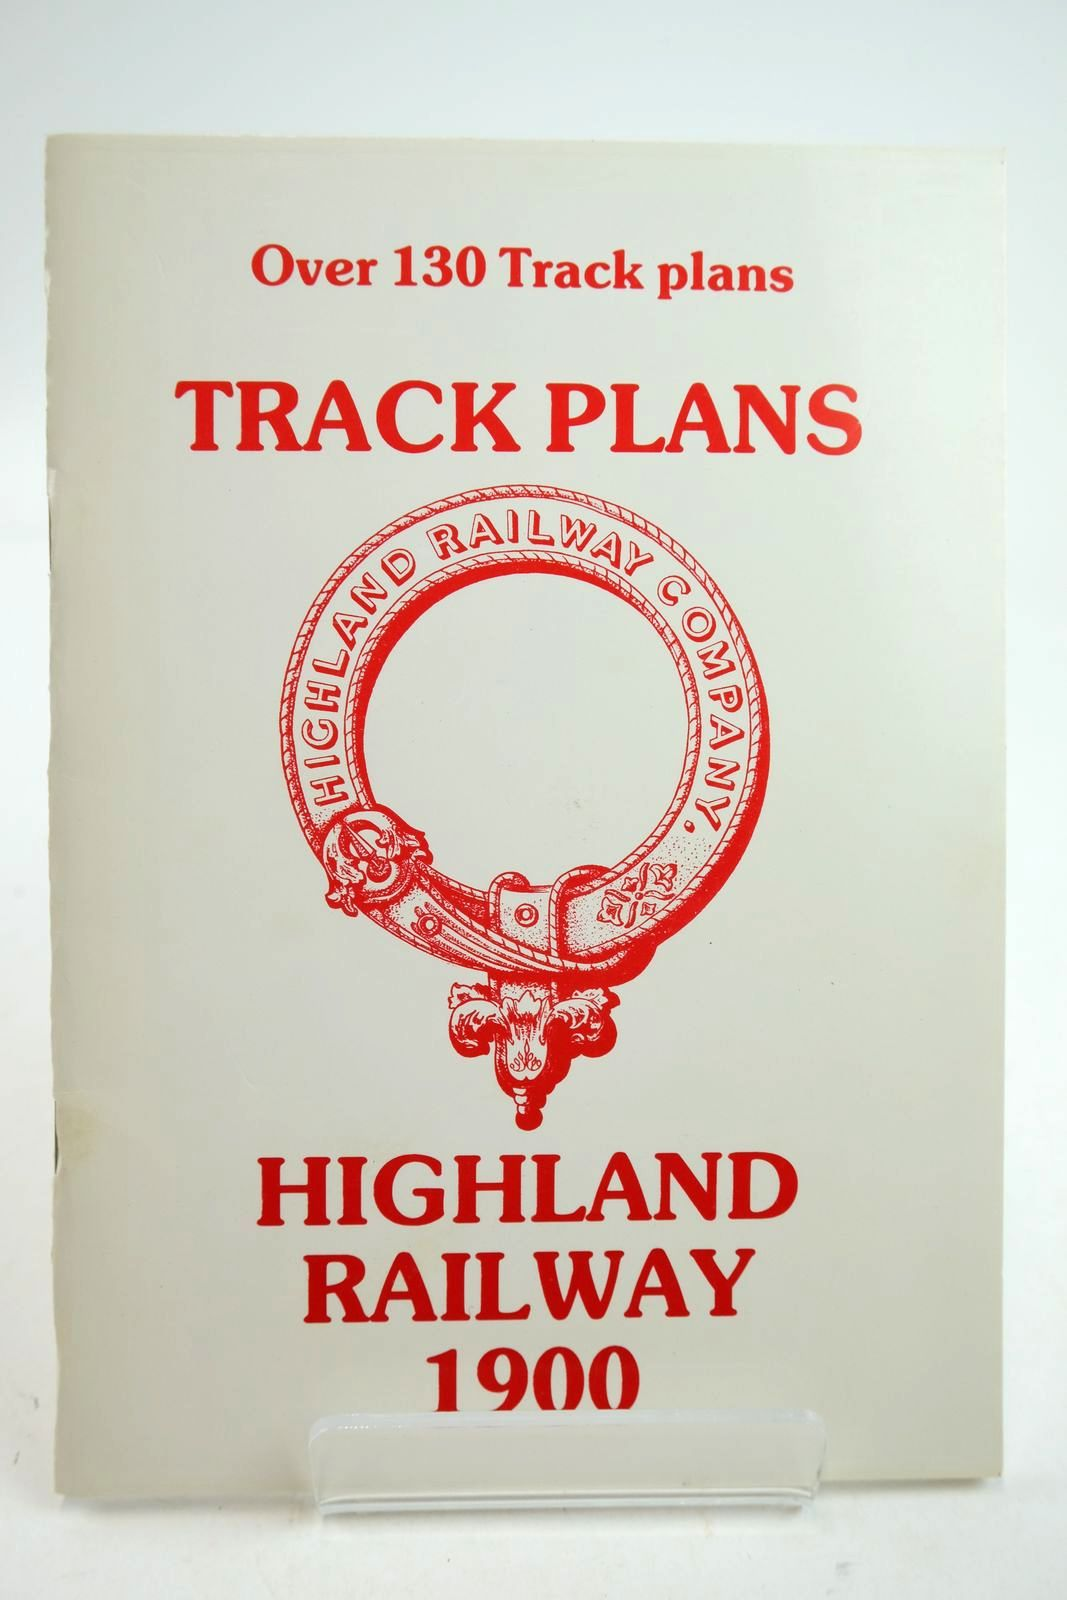 Photo of TRACK PLANS FROM THE HIGHLAND RAILWAY 1900 published by Dornoch Press (STOCK CODE: 2133323)  for sale by Stella & Rose's Books